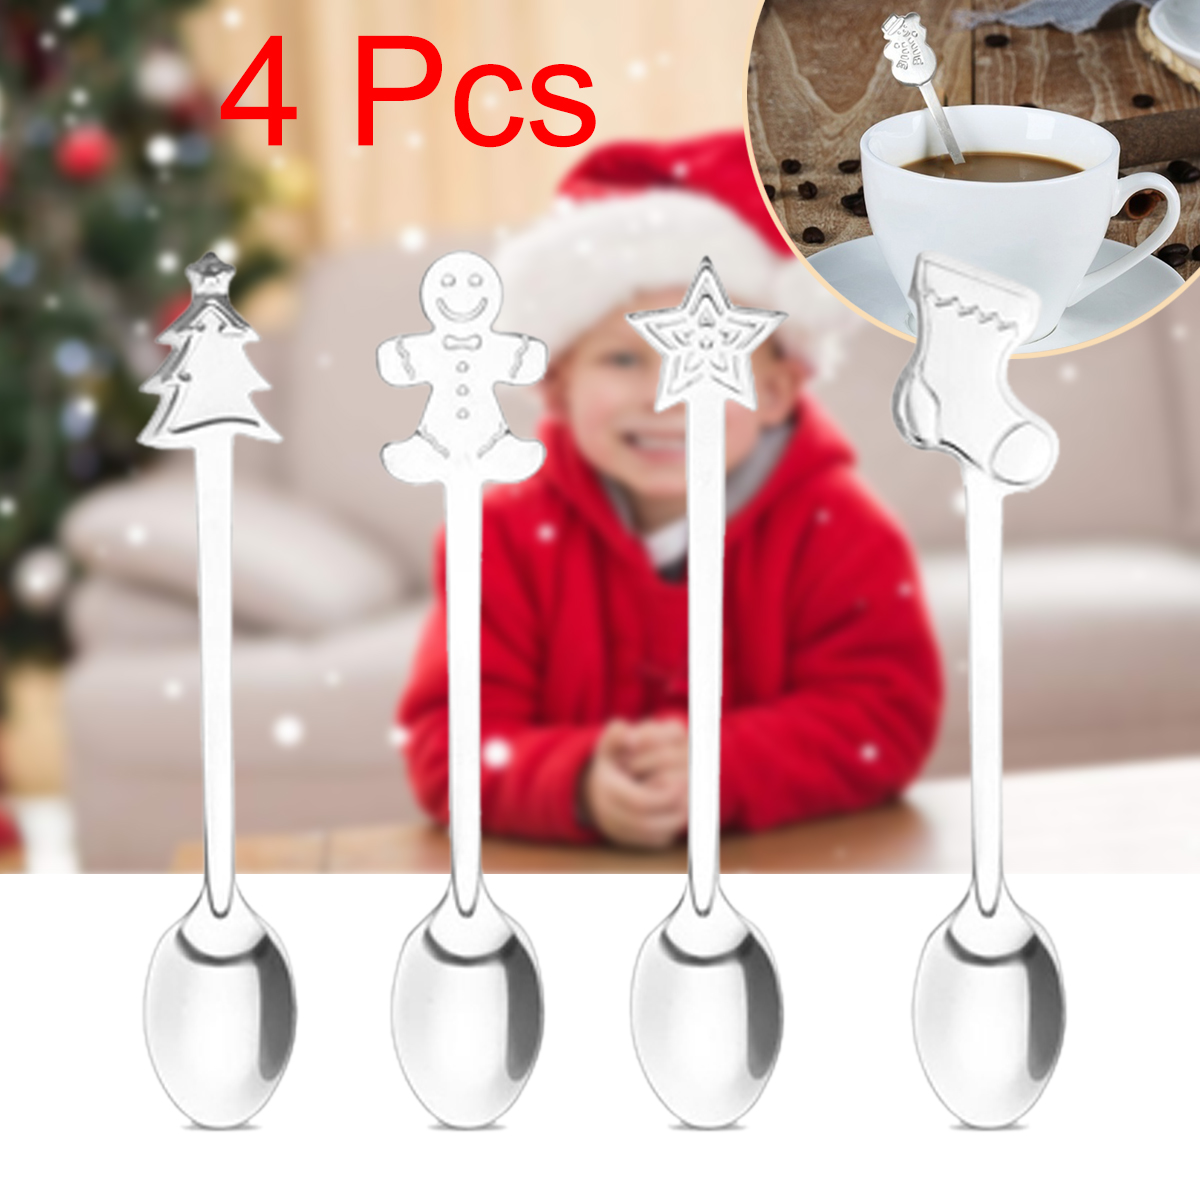 4PCS Christmas Stainless Steel Spoon Fashion Cartoon Coffee Spoon Life Home font b Kitchen b font